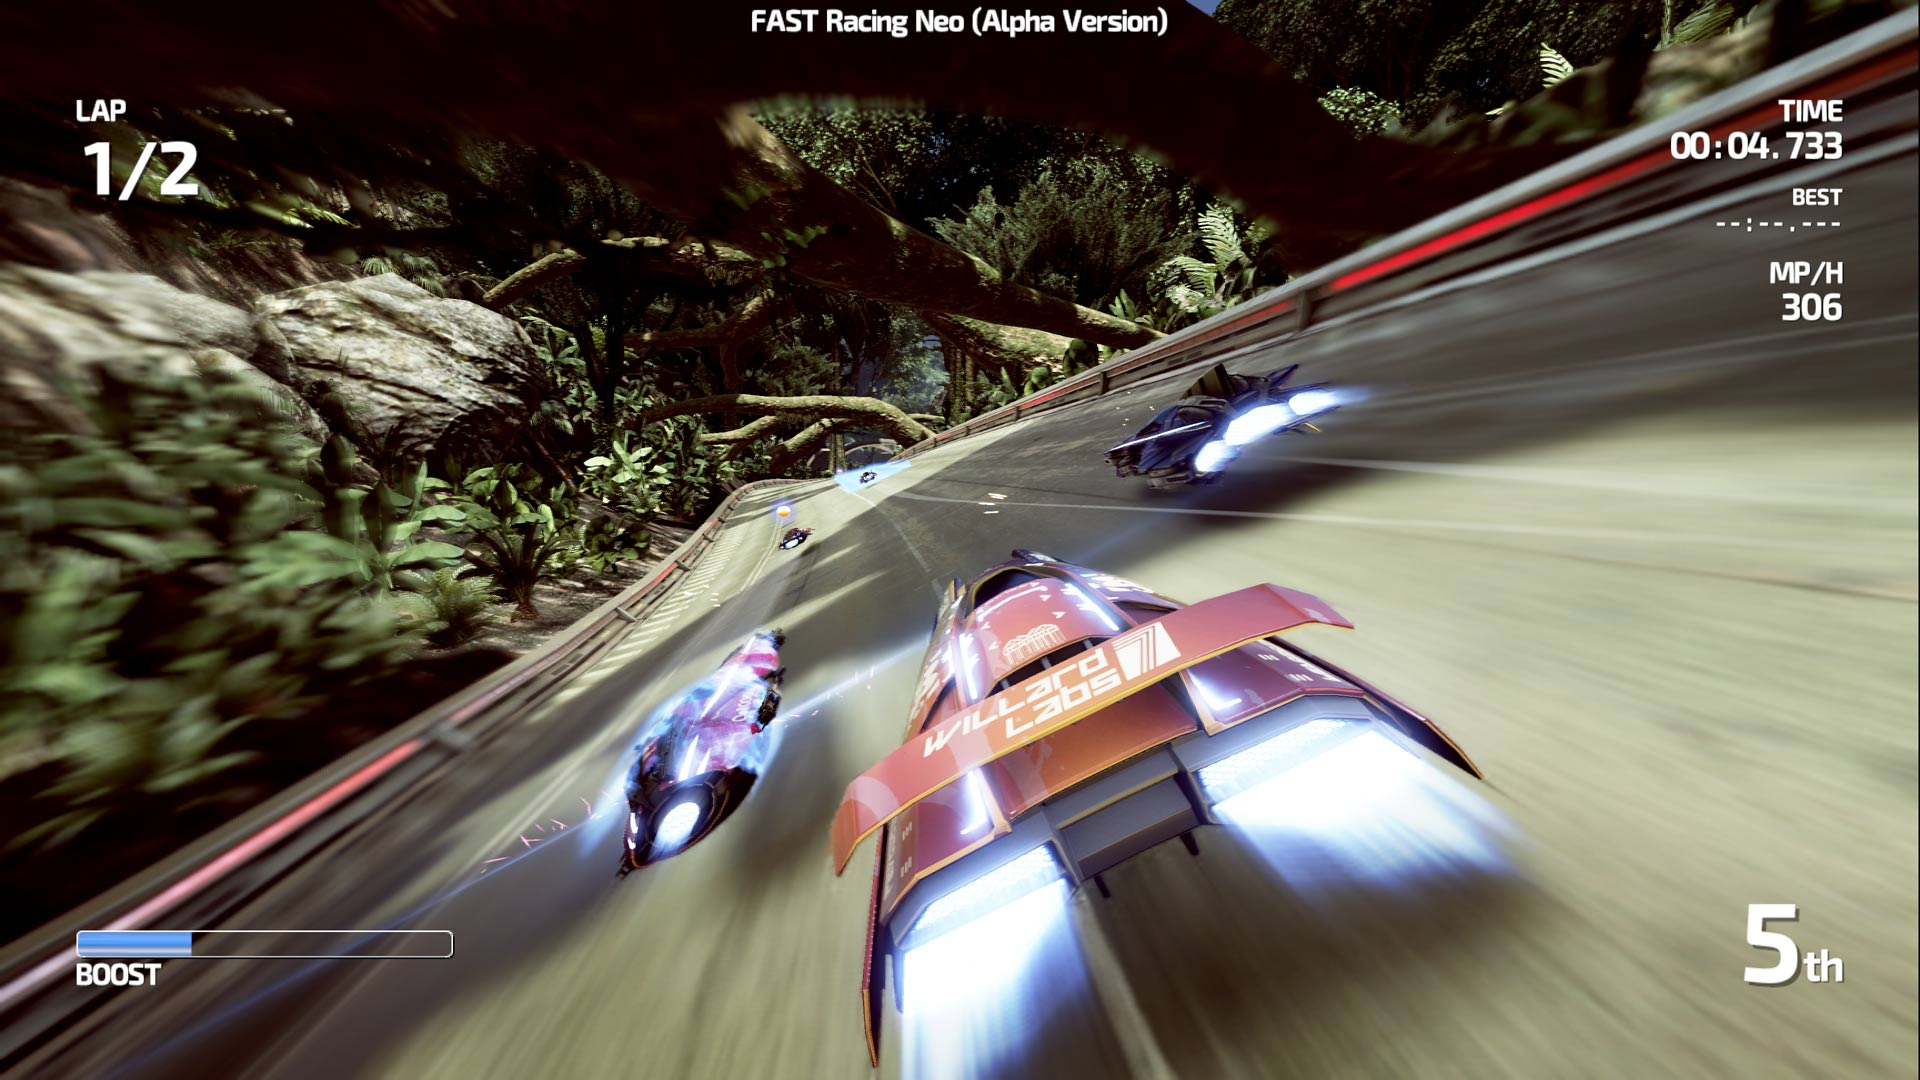 FAST Racing Neo velocidad a 60 frames